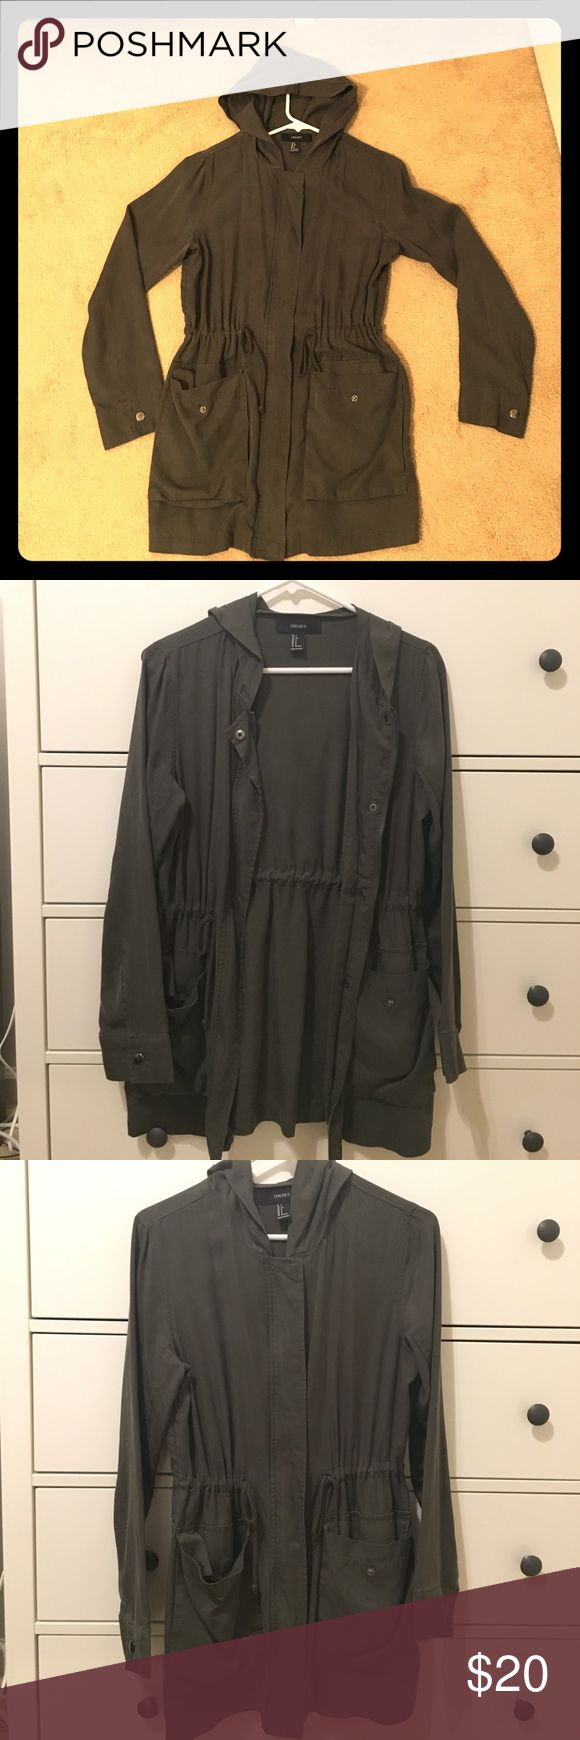 Forever 21 woman's light jacket Forever 21 women's light utility jacket in a very good condition. Forever 21 Jackets & Coats Utility Jackets